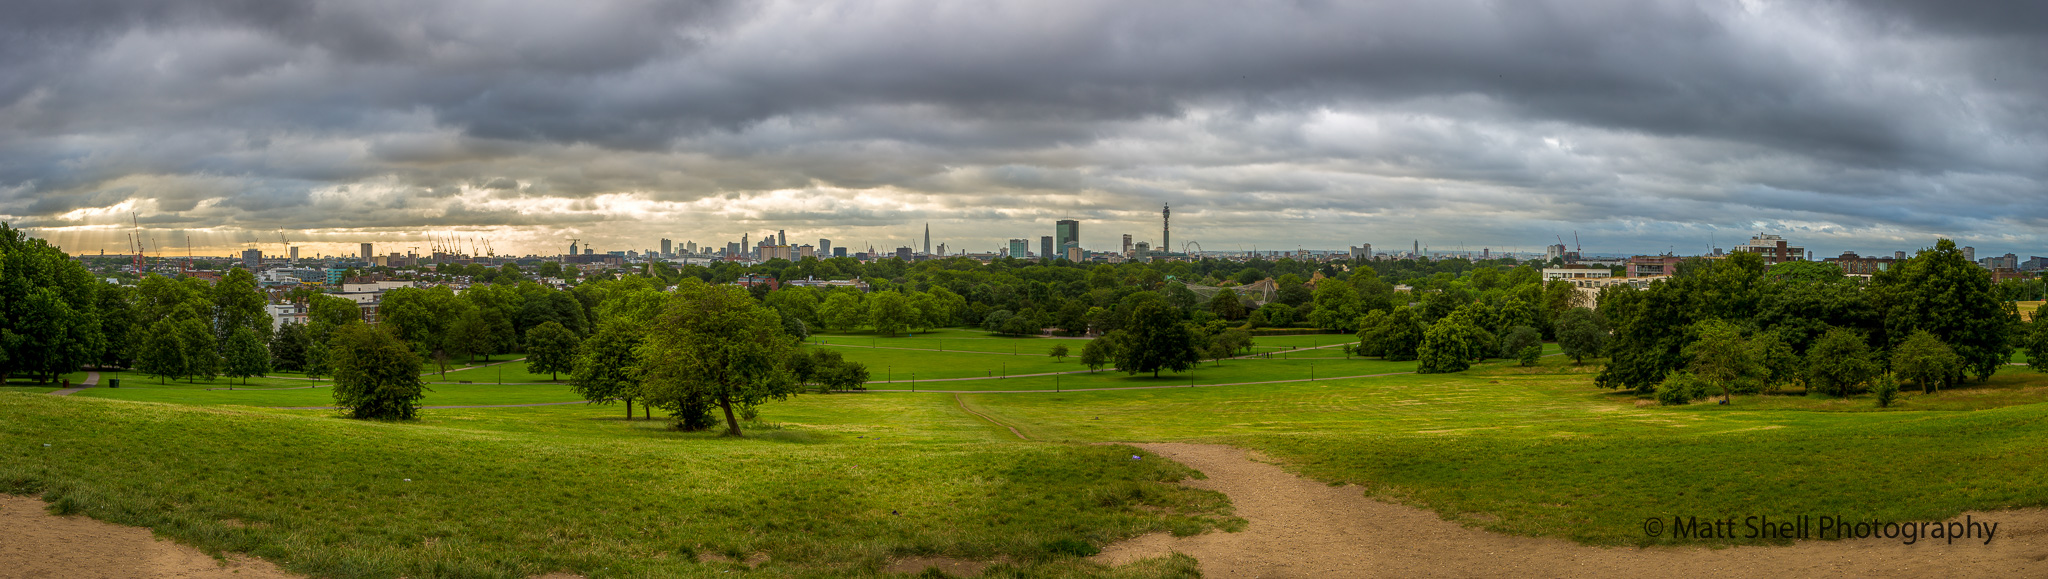 This is the view from standing at the top of the hill, facing central London across the river.  If you look carefully toward the right of center, you can see the London Eye.